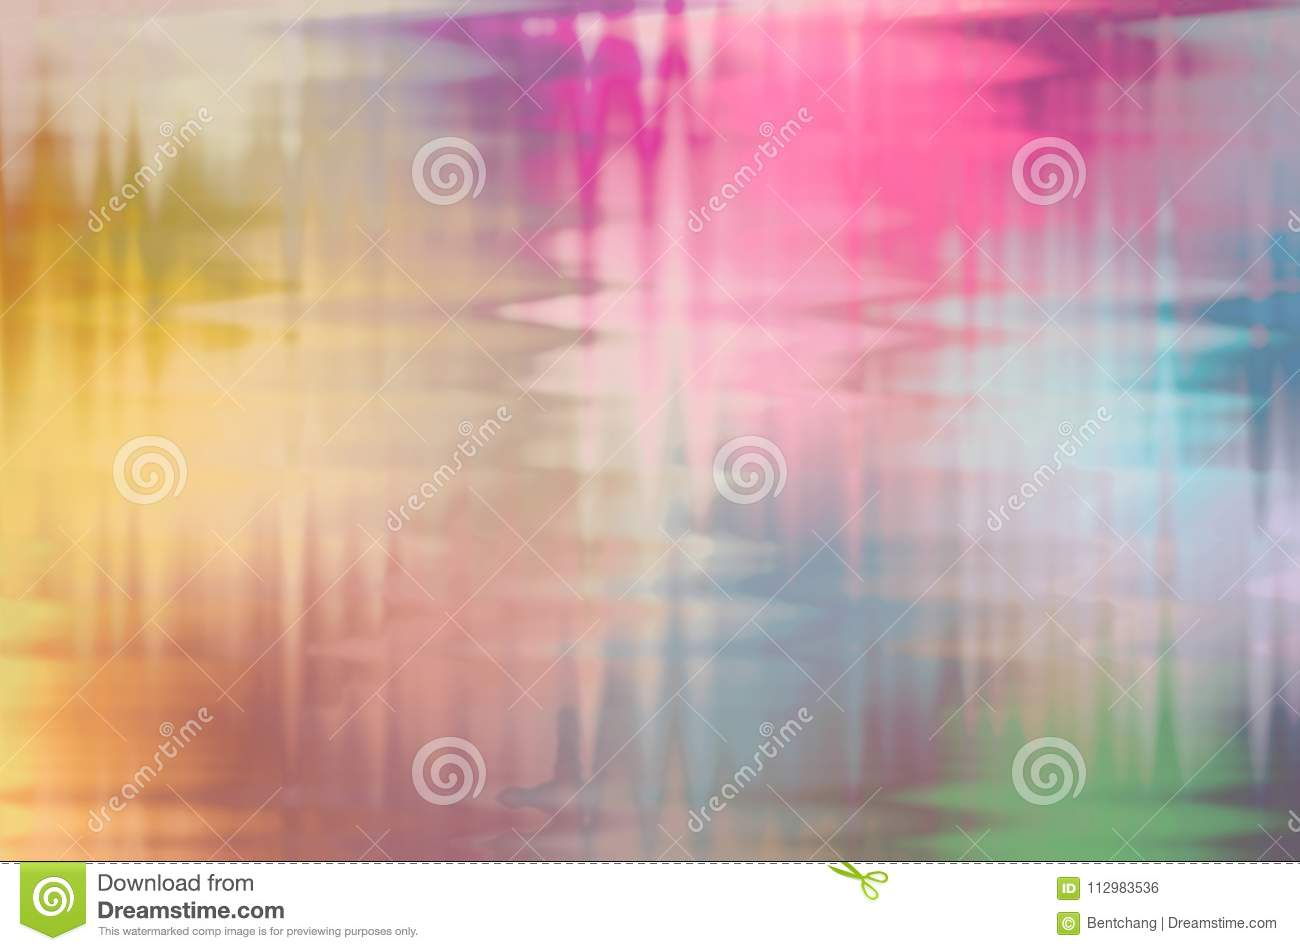 Background or backdrop, motion blur, good for design texture. Yellow, dream, dreamy & smooth.